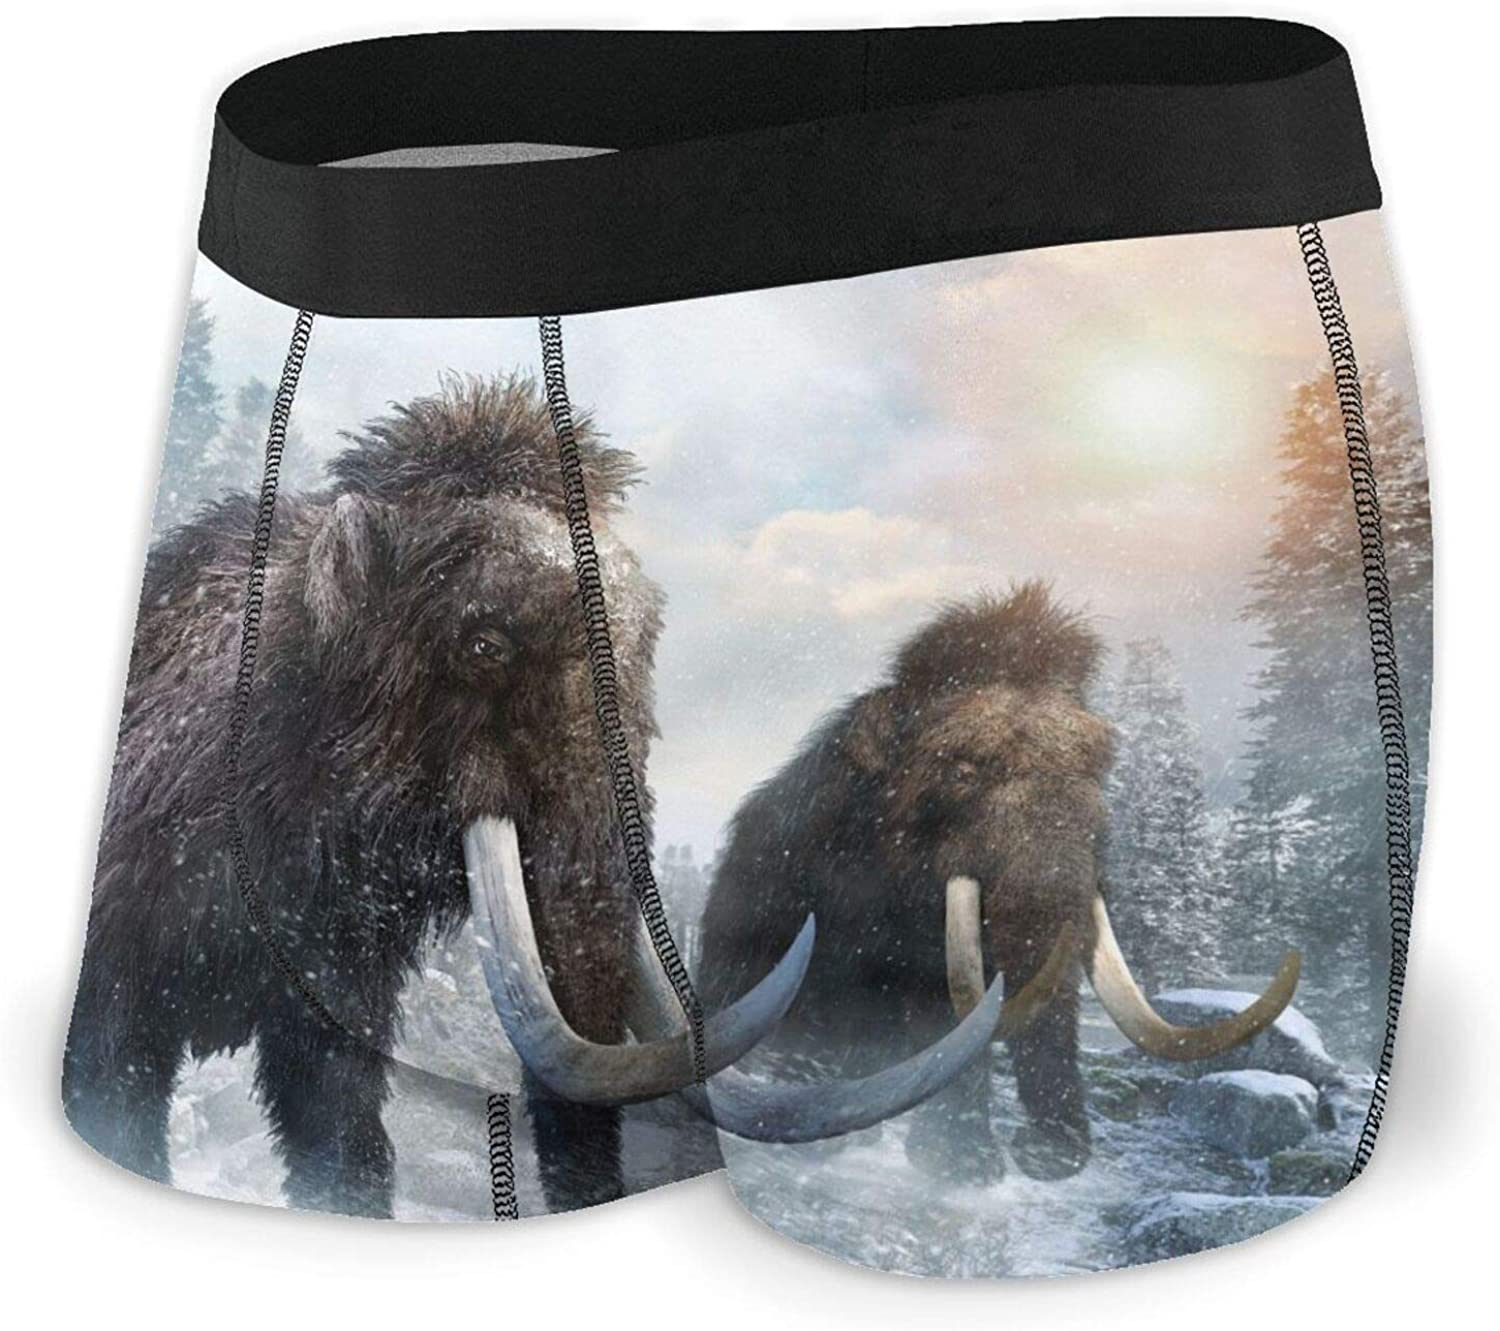 TZT Mammoth Scene Cheap super special price Men's Boxer Ranking TOP7 Briefs Comfortable Breathable Unde